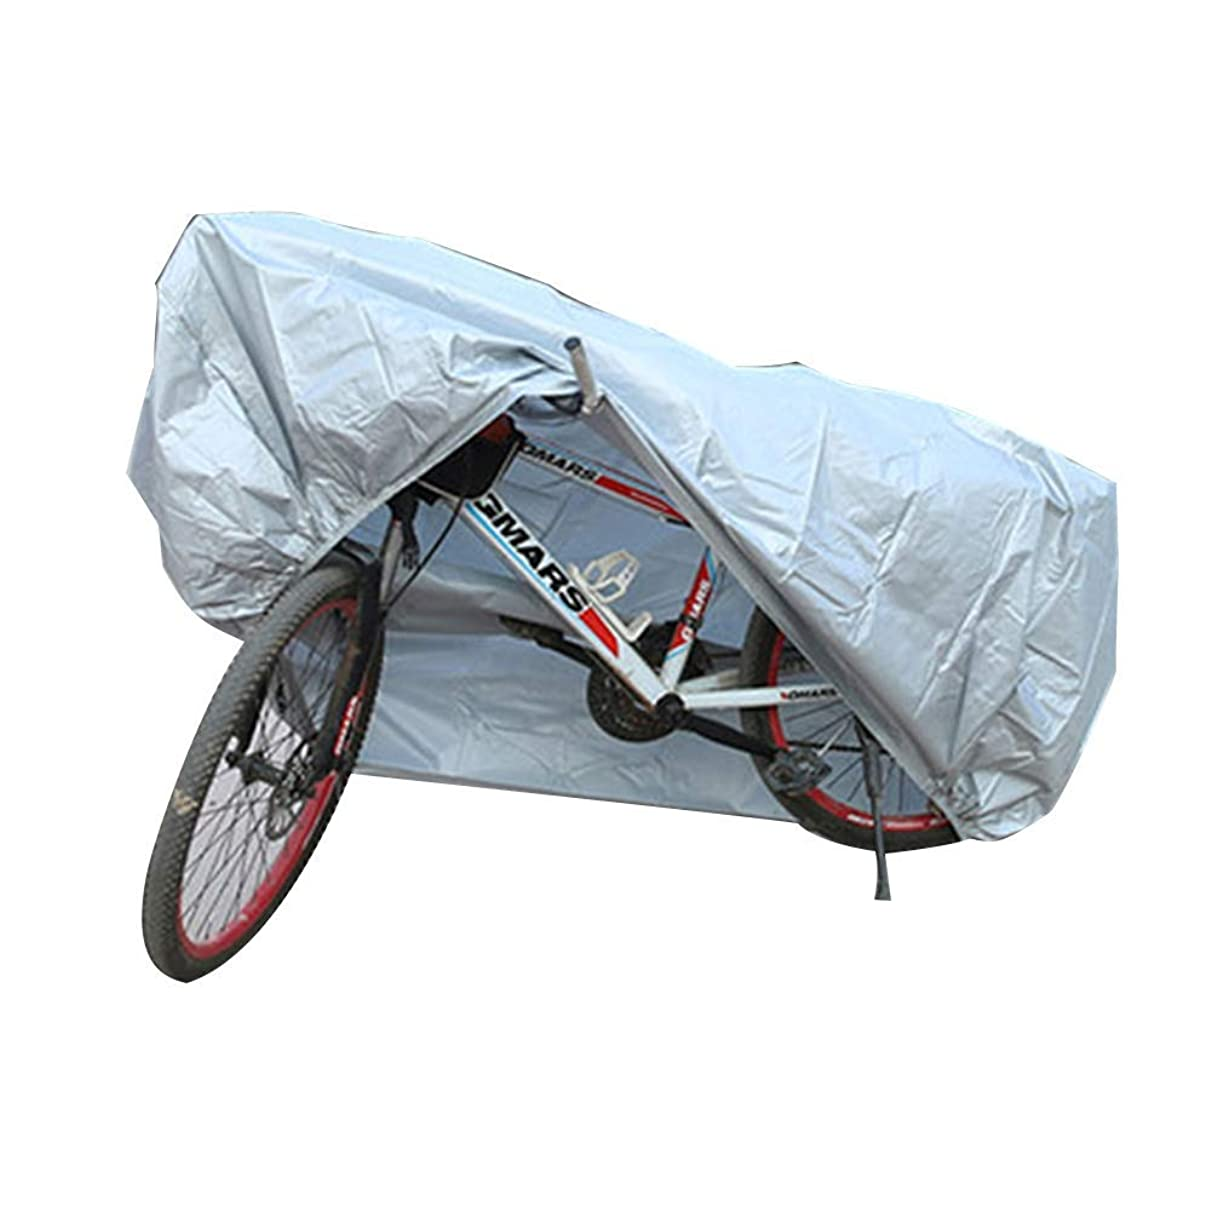 Bicycle Cover Waterproof Shade Net/Sunscreen Tarpaulin, Mountain Bike Rainproof Antirust, Multiple Sizes Available, WenMing Yue, Silver, l